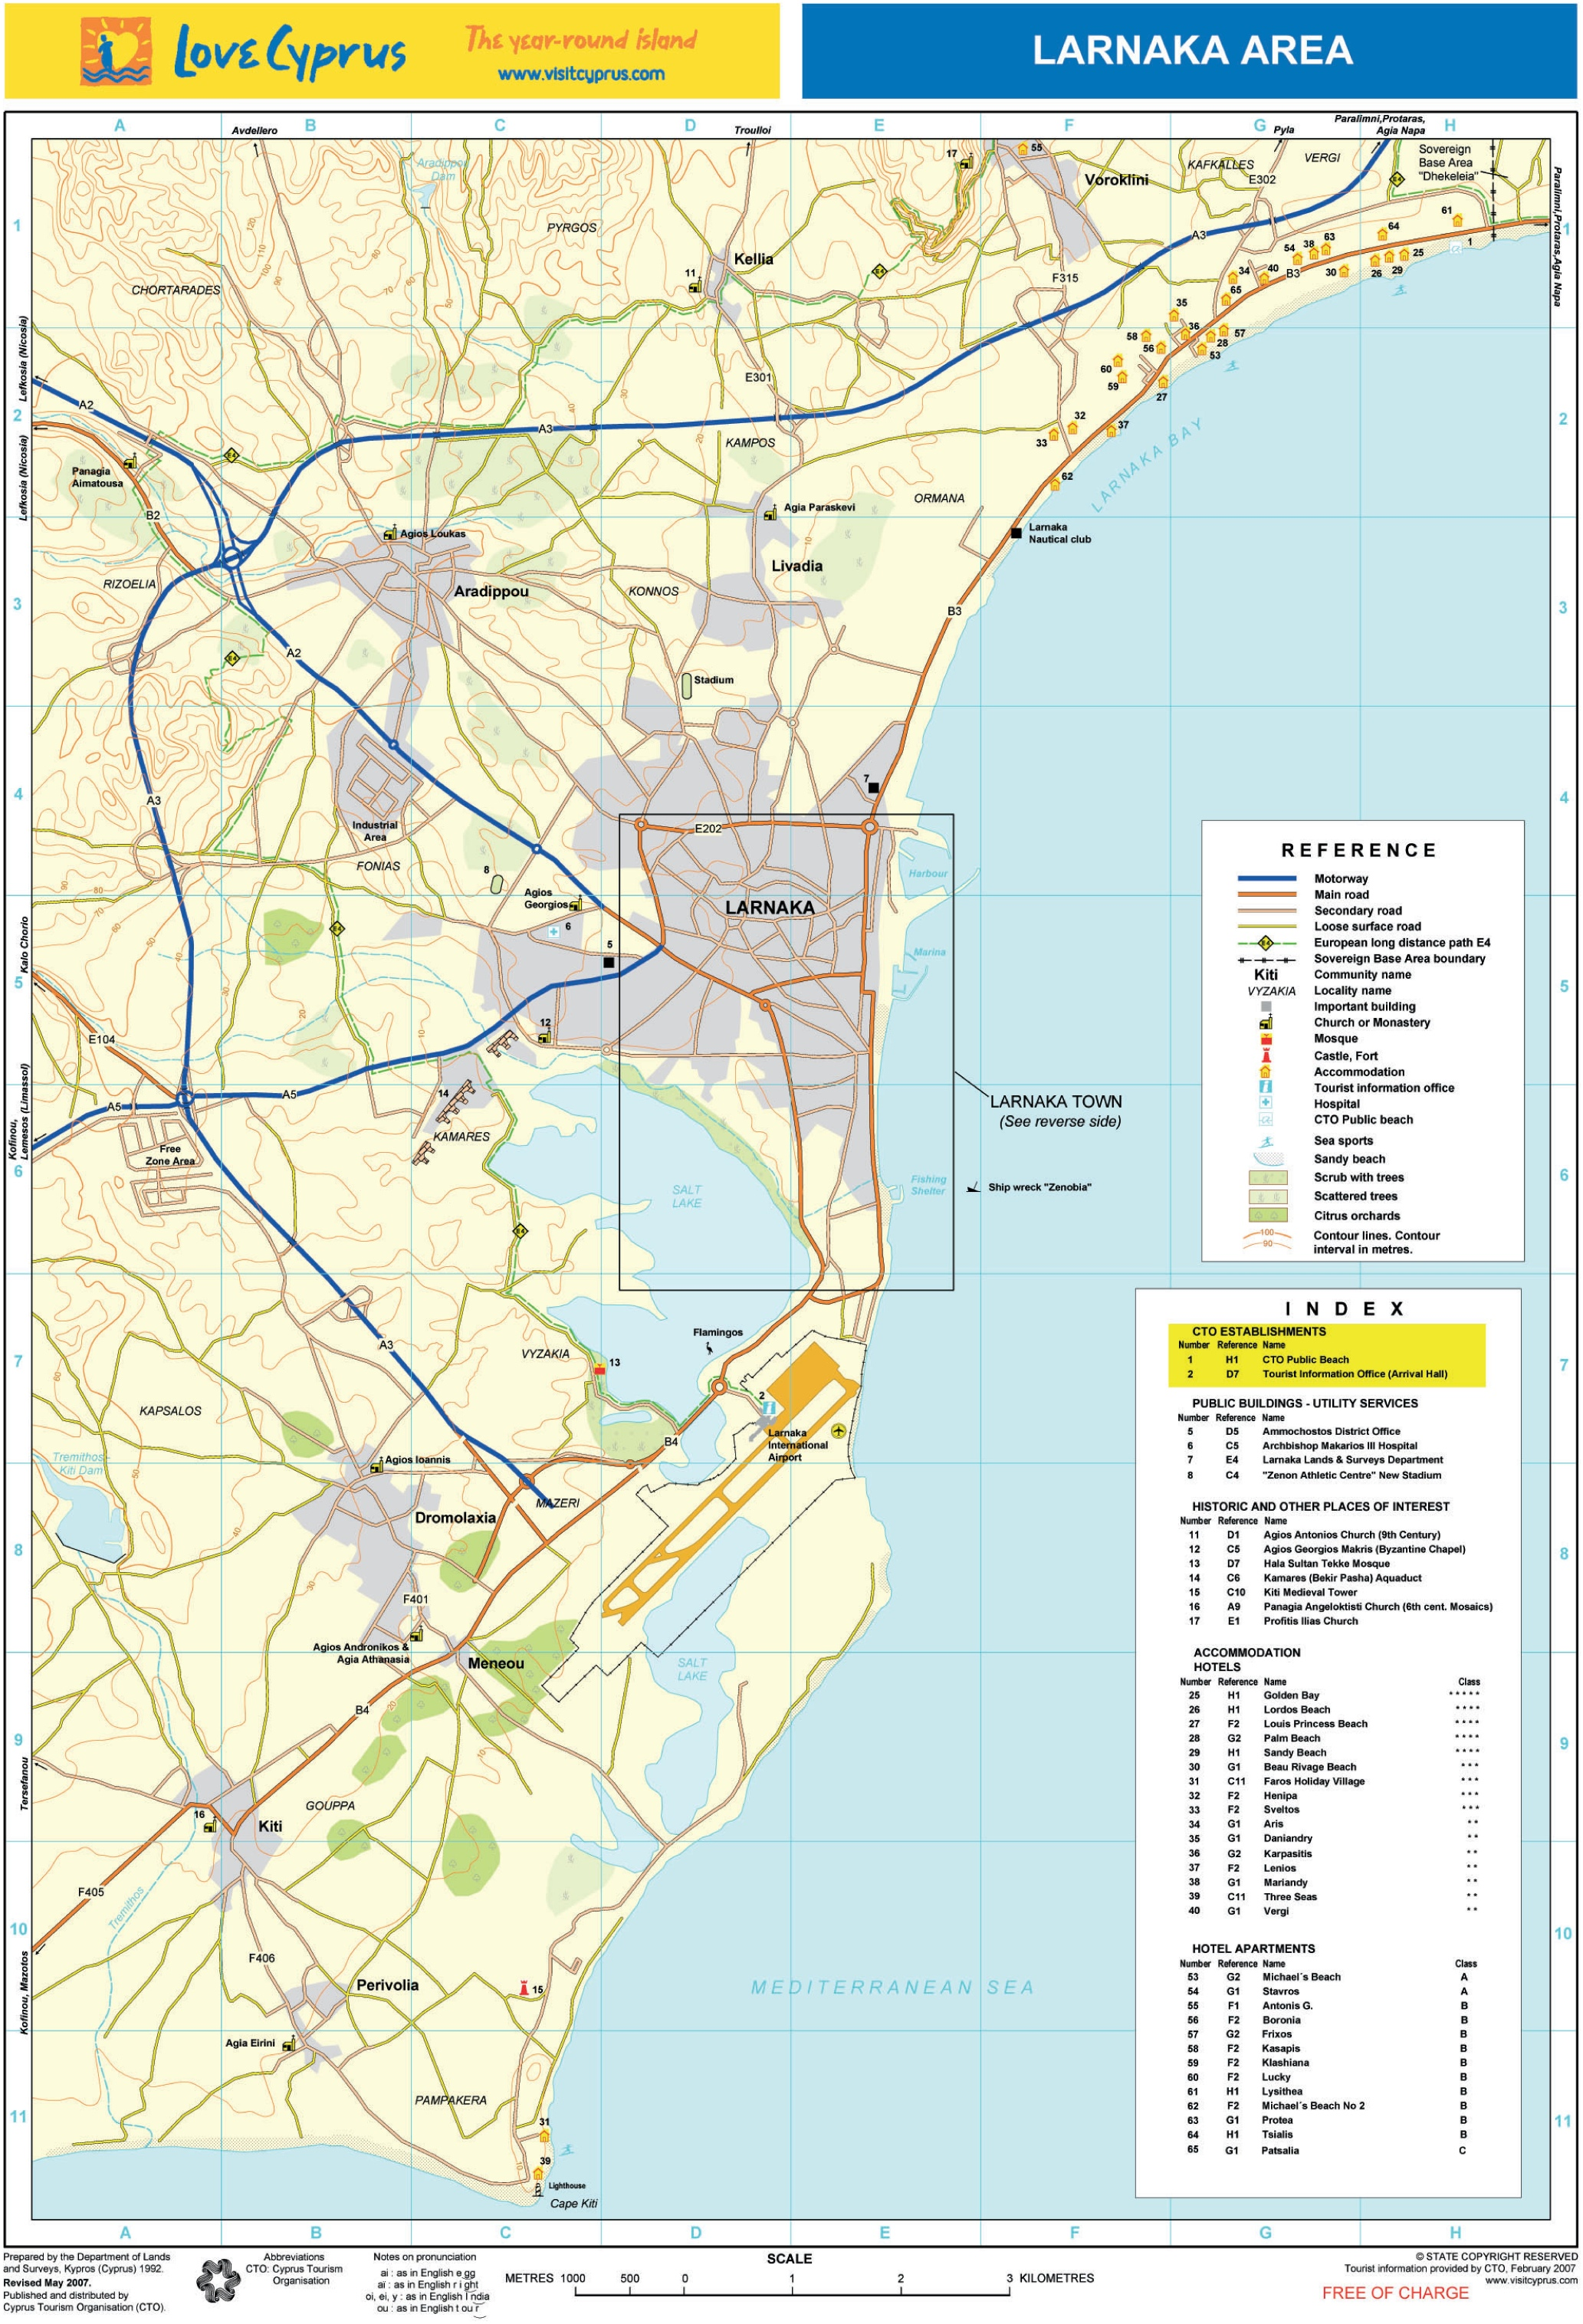 Larnaca area tourist map